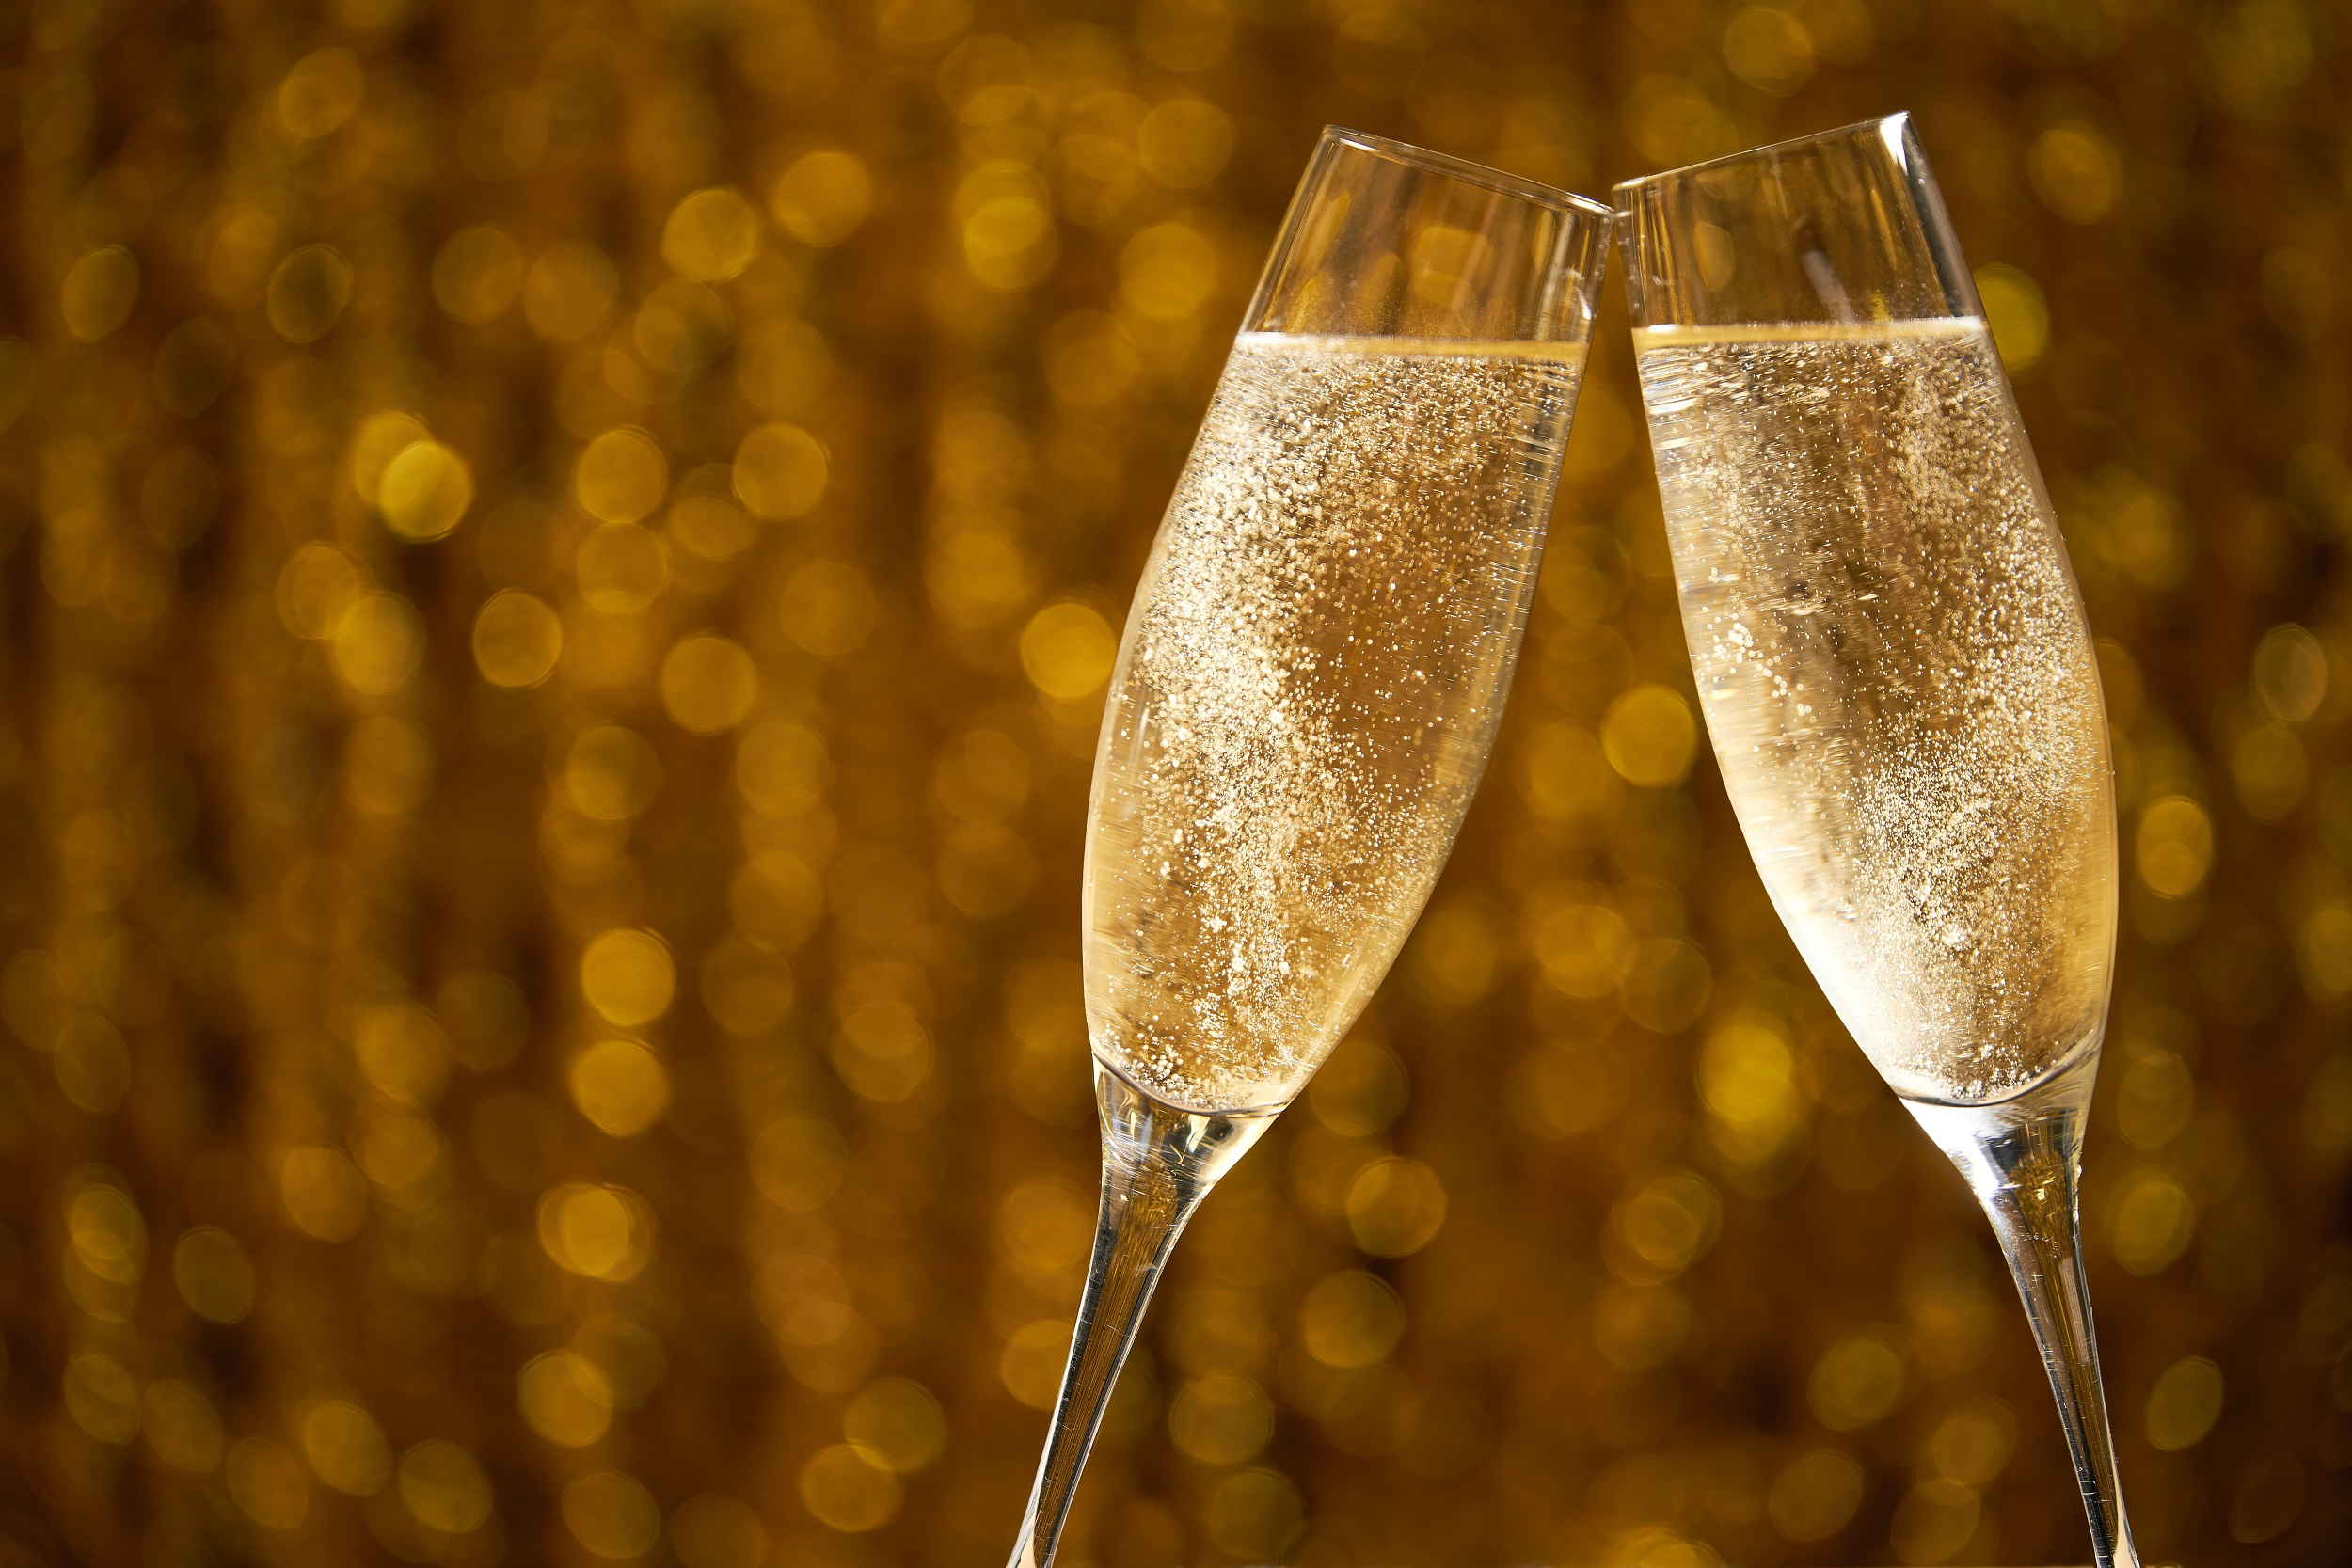 two glasses of champagne on golden stylish background